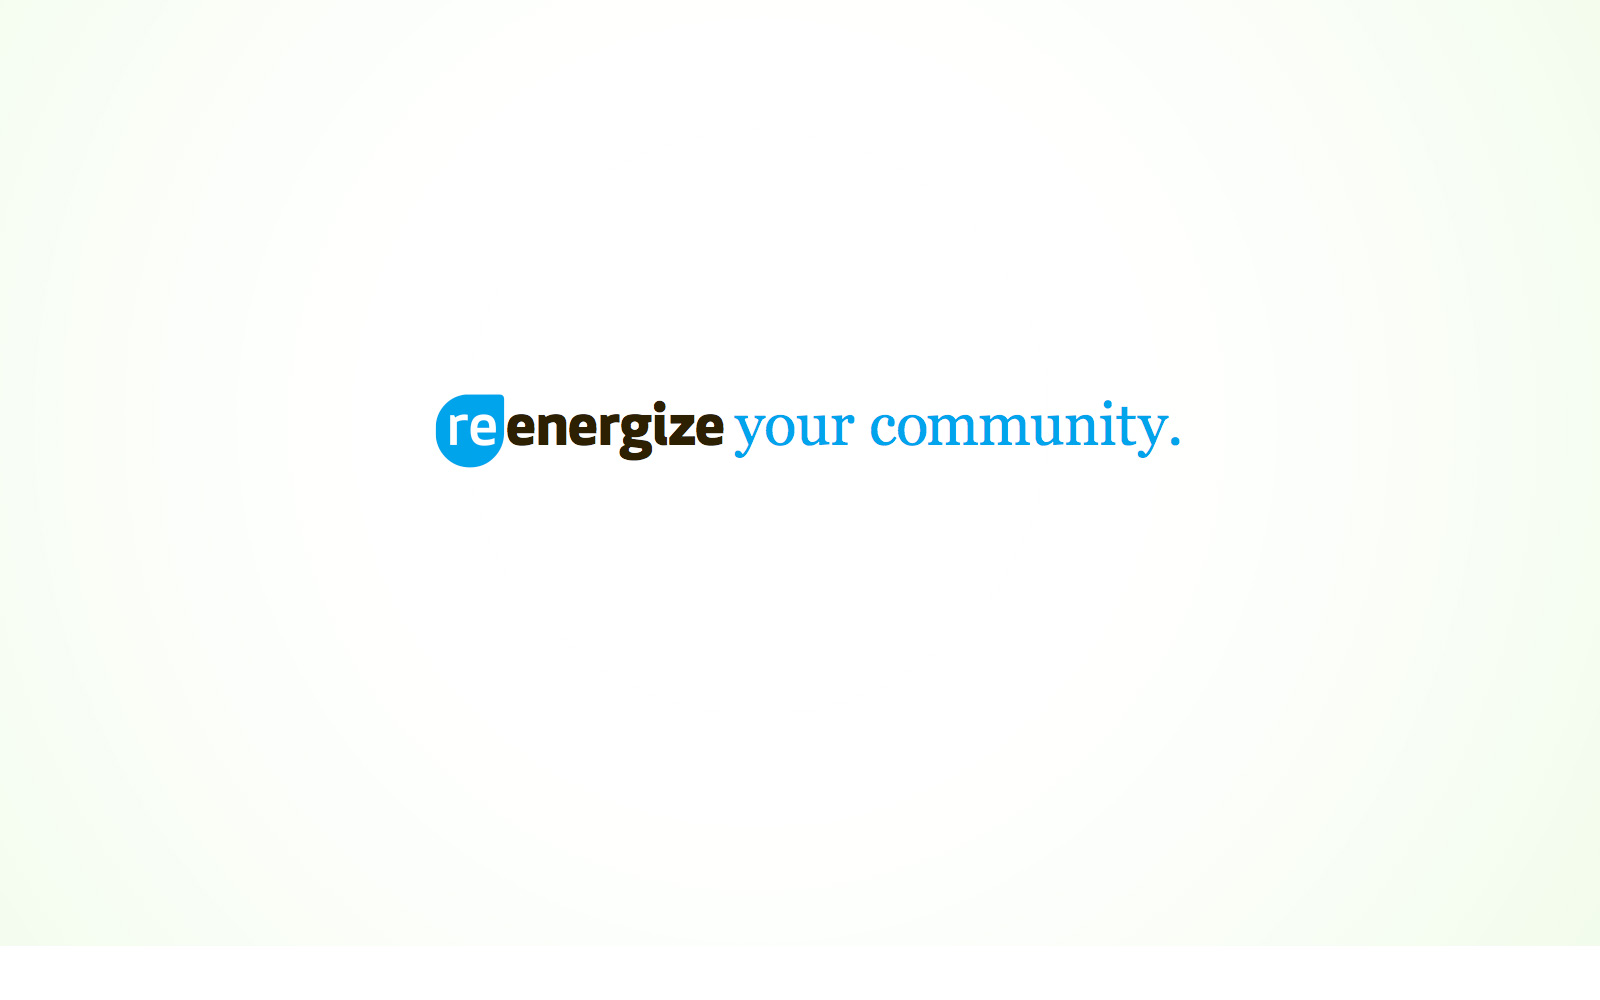 Gts 12 energize